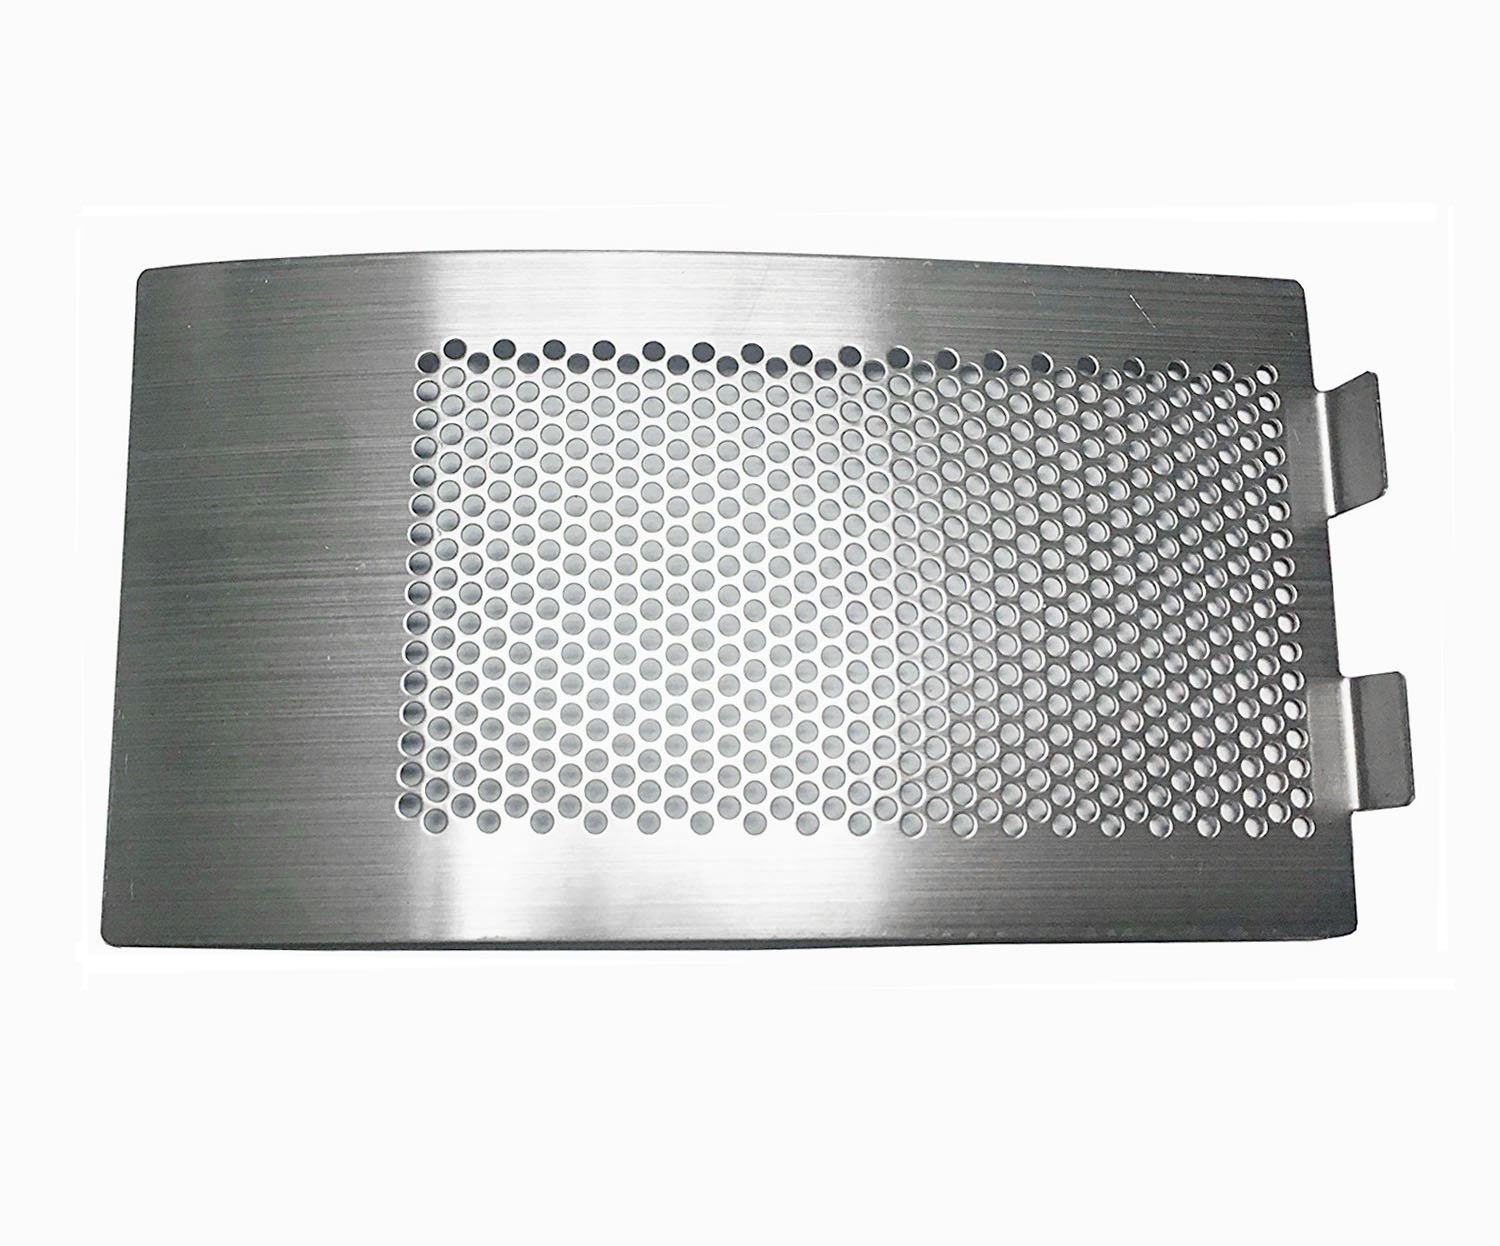 WANRAY Big Green Egg Accessories,Stainless Steel Punched MESH Panel Fits for Medium,Large Big Green Egg Draft Door Kamado Grill Accessories Egg Bottom Vent Replacement Punched Metal Panel